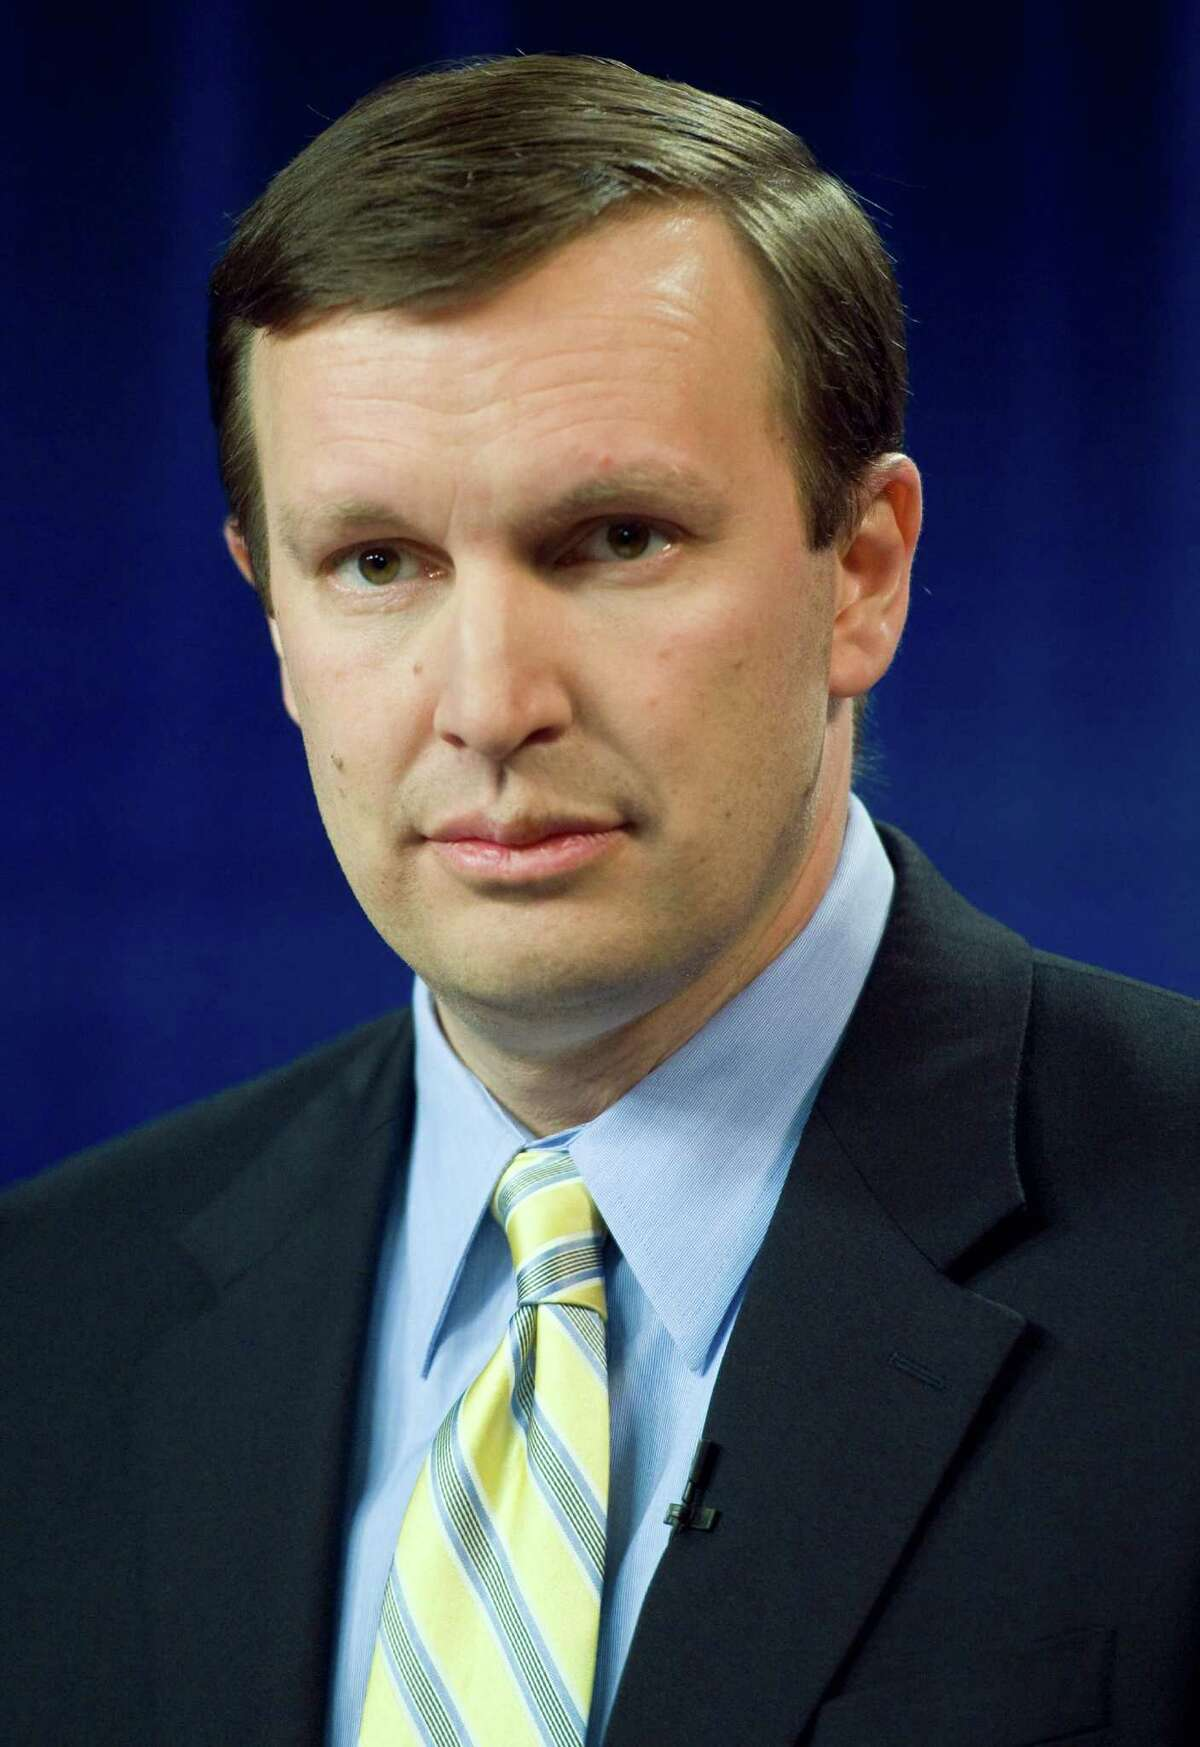 Democratic candidate for U.S. Senate, U.S. Rep. Chris Murphy, D-Conn., stands at a podium before a live televised debate in West Hartford, Conn., Thursday, April 5, 2012. (AP Photo/Jessica Hill)